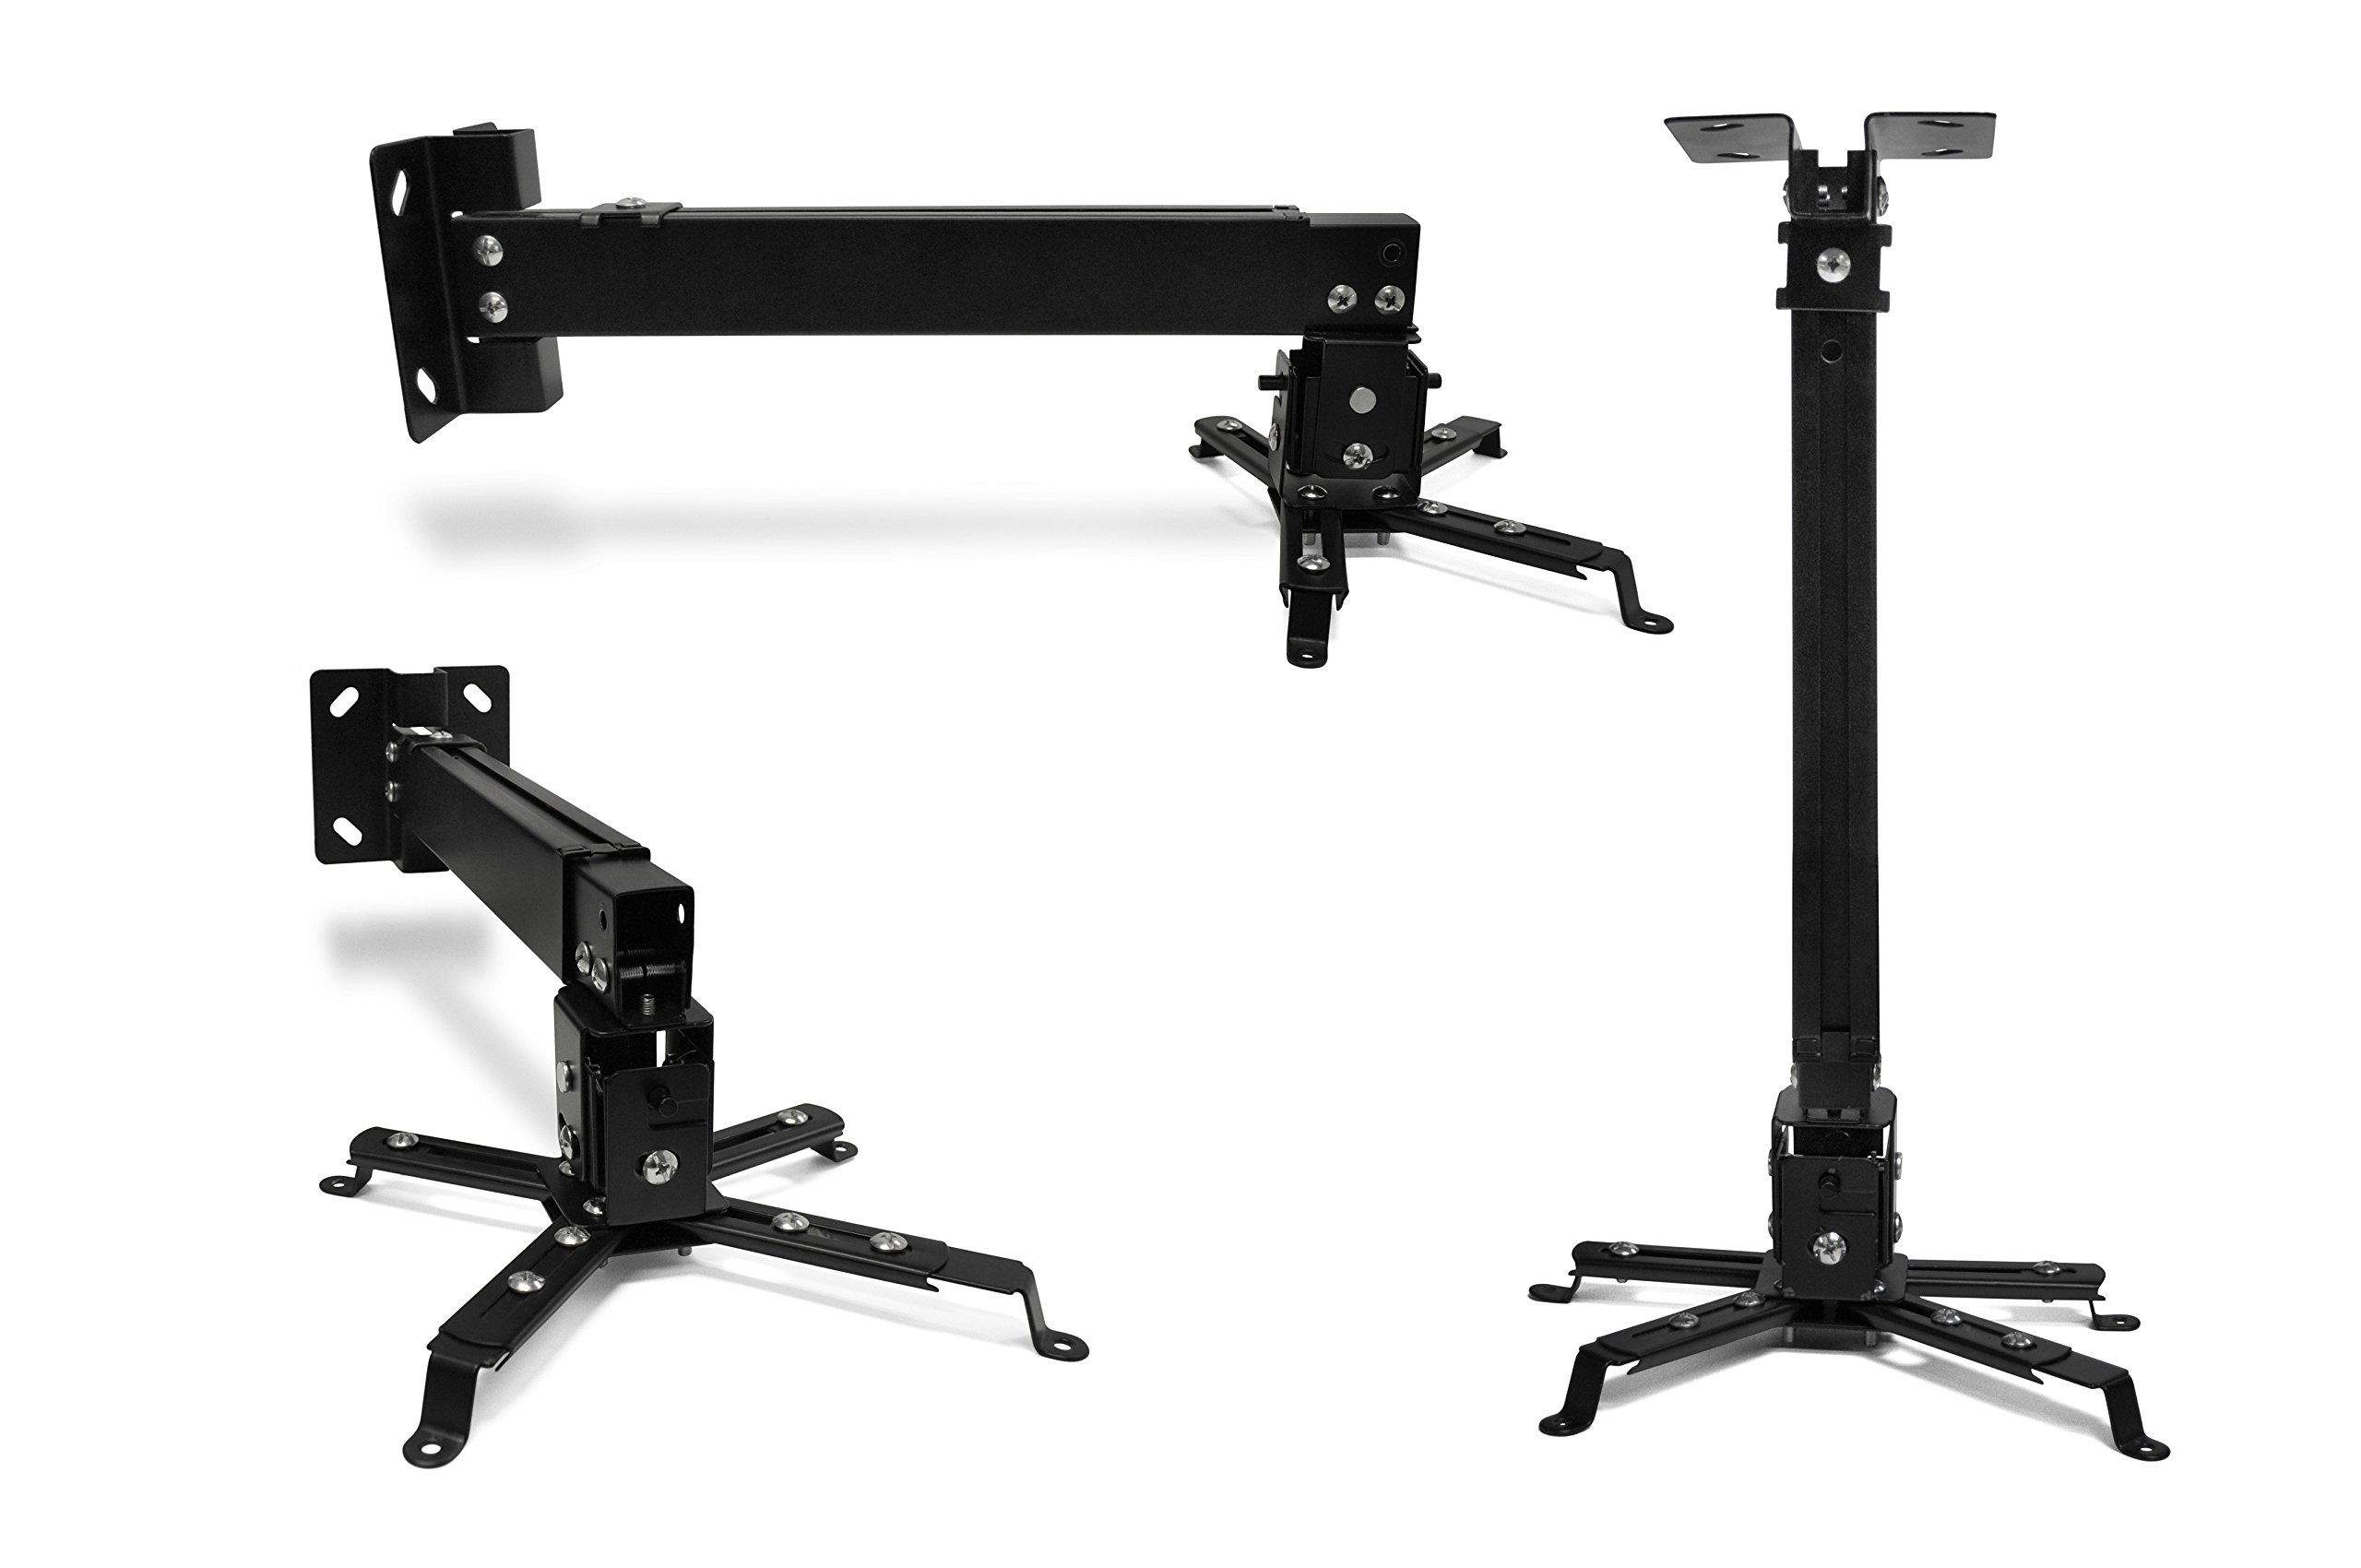 Universal Home Theater Projector Ceiling Mount with Adjustable Tilt and Swivel Arm (P-MOUNT-BL) by FAVI (Image #1)